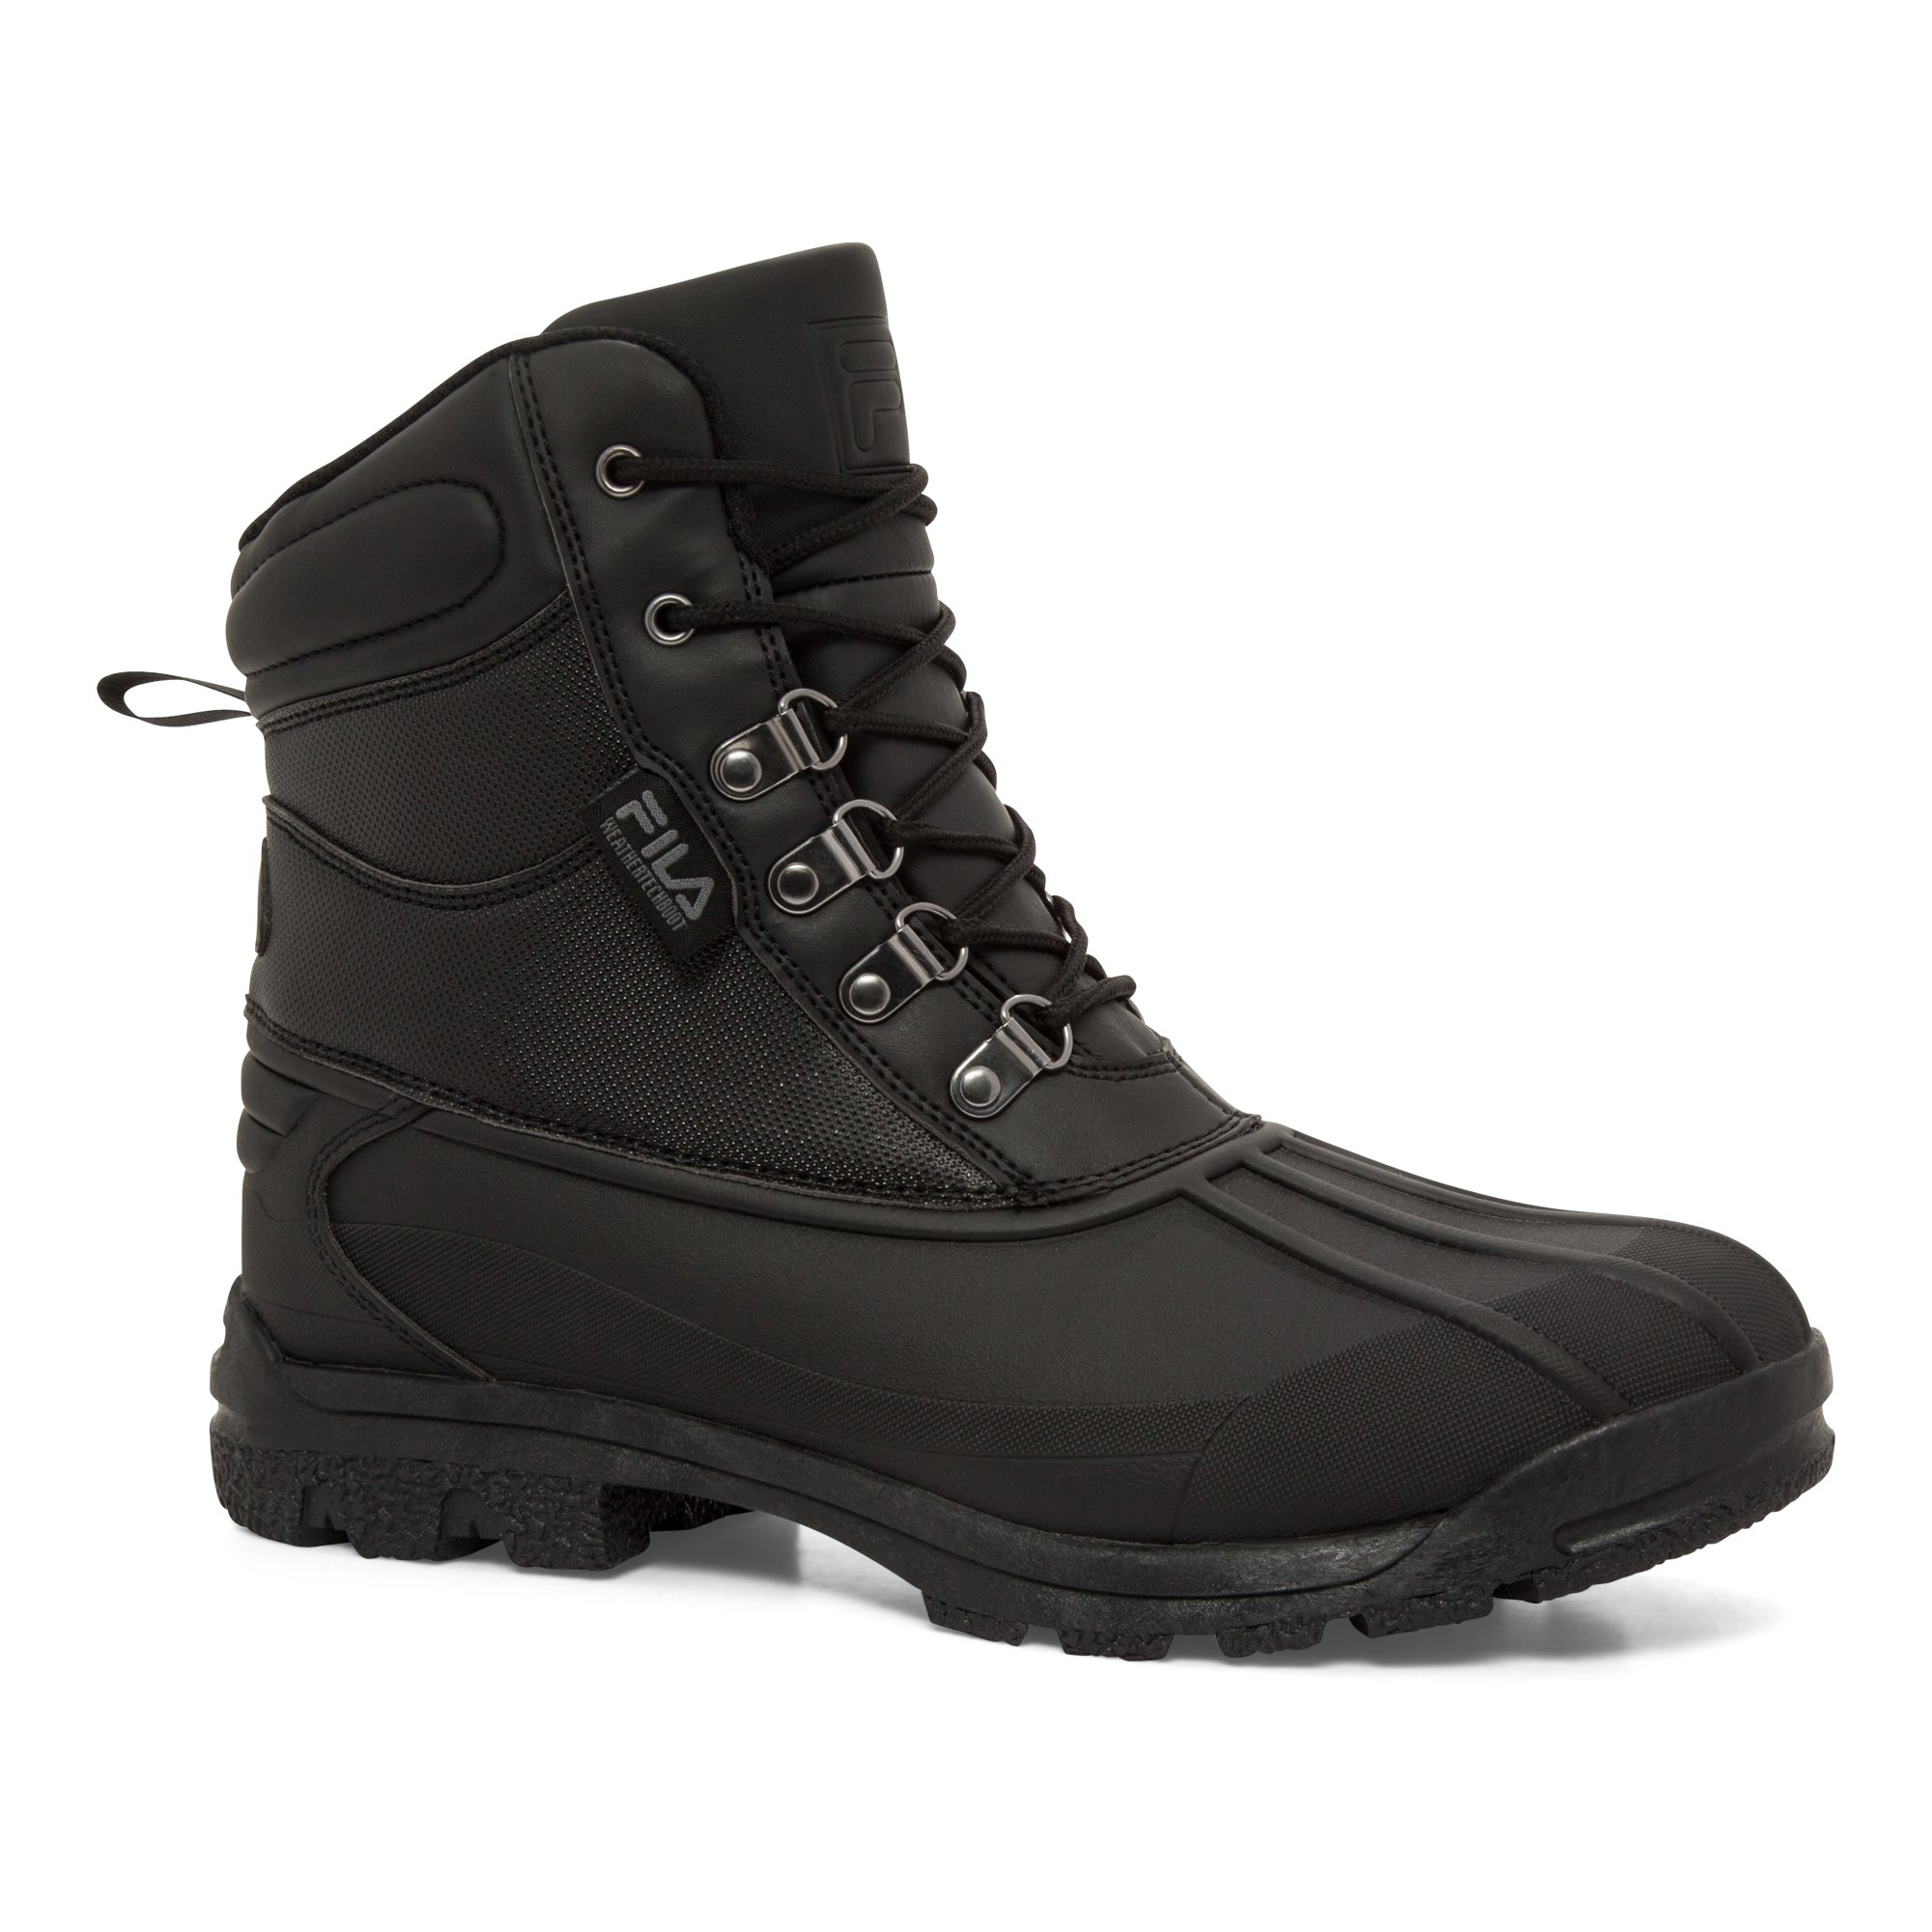 Fila Men's WeatherTech Extreme Waterproof Boot | eBay